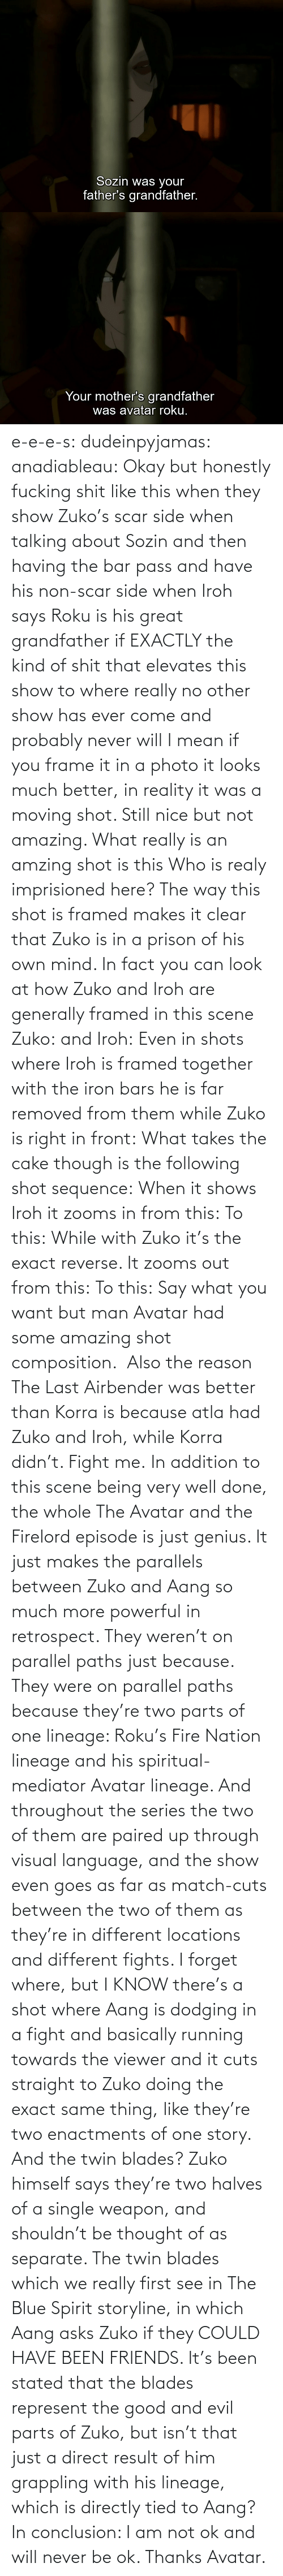 Is This: e-e-e-s: dudeinpyjamas:   anadiableau: Okay but honestly fucking shit like this when they show Zuko's scar side when talking about Sozin and then having the bar pass and have his non-scar side when Iroh says Roku is his great grandfather if EXACTLY the kind of shit that elevates this show to where really no other show has ever come and probably never will I mean if you frame it in a photo it looks much better, in reality it was a moving shot. Still nice but not amazing. What really is an amzing shot is this Who is realy imprisioned here? The way this shot is framed makes it clear that Zuko is in a prison of his own mind. In fact you can look at how Zuko and Iroh are generally framed in this scene Zuko: and Iroh: Even in shots where Iroh is framed together with the iron bars he is far removed from them while Zuko is right in front:  What takes the cake though is the following shot sequence: When it shows Iroh it zooms in from this: To this: While with Zuko it's the exact reverse. It zooms out from this: To this: Say what you want but man Avatar had some amazing shot composition.   Also the reason The Last Airbender was better than Korra is because atla had Zuko and Iroh, while Korra didn't. Fight me.    In addition to this scene being very well done, the whole The Avatar and the Firelord episode is just genius.  It just makes the parallels between Zuko and Aang so much more powerful in retrospect.  They weren't on parallel paths just because.  They were on parallel paths because they're two parts of one lineage: Roku's Fire Nation lineage and his spiritual-mediator Avatar lineage.  And throughout the series the two of them are paired up through visual language, and the show even goes as far as match-cuts between the two of them as they're in different locations and different fights.  I forget where, but I KNOW there's a shot where Aang is dodging in a fight and basically running towards the viewer and it cuts straight to Zuko doing the exact same thing, like they're two enactments of one story.   And the twin blades?  Zuko himself says they're two halves of a single weapon, and shouldn't be thought of as separate.  The twin blades which we really first see in The Blue Spirit storyline, in which Aang asks Zuko if they COULD HAVE BEEN FRIENDS.  It's been stated that the blades represent the good and evil parts of Zuko, but isn't that just a direct result of him grappling with his lineage, which is directly tied to Aang? In conclusion: I am not ok and will never be ok.  Thanks Avatar.